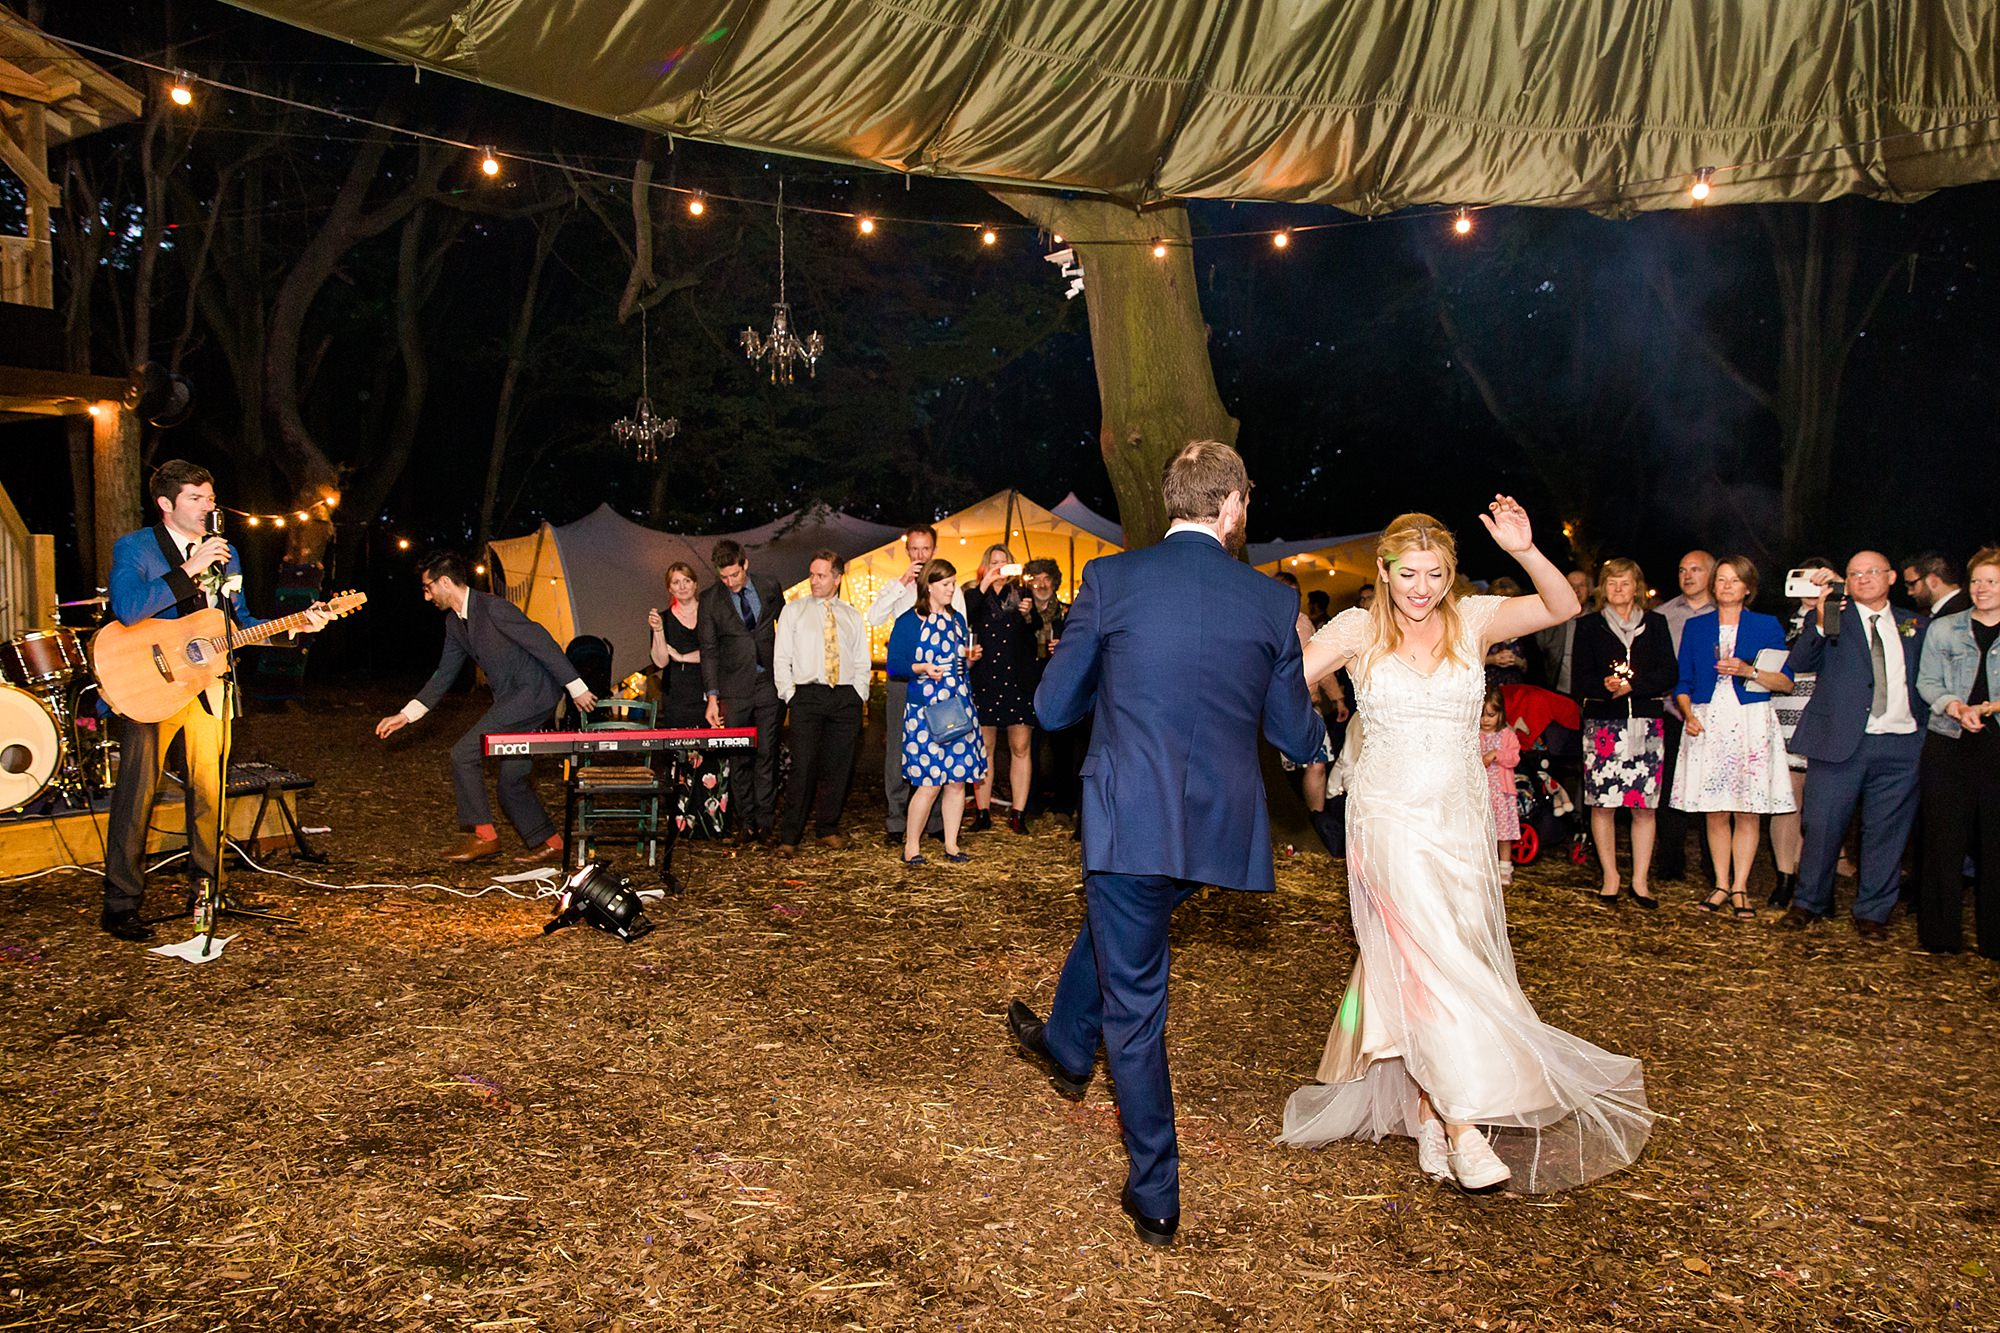 Woodland Weddings Tring bride and groom first dance swing dance